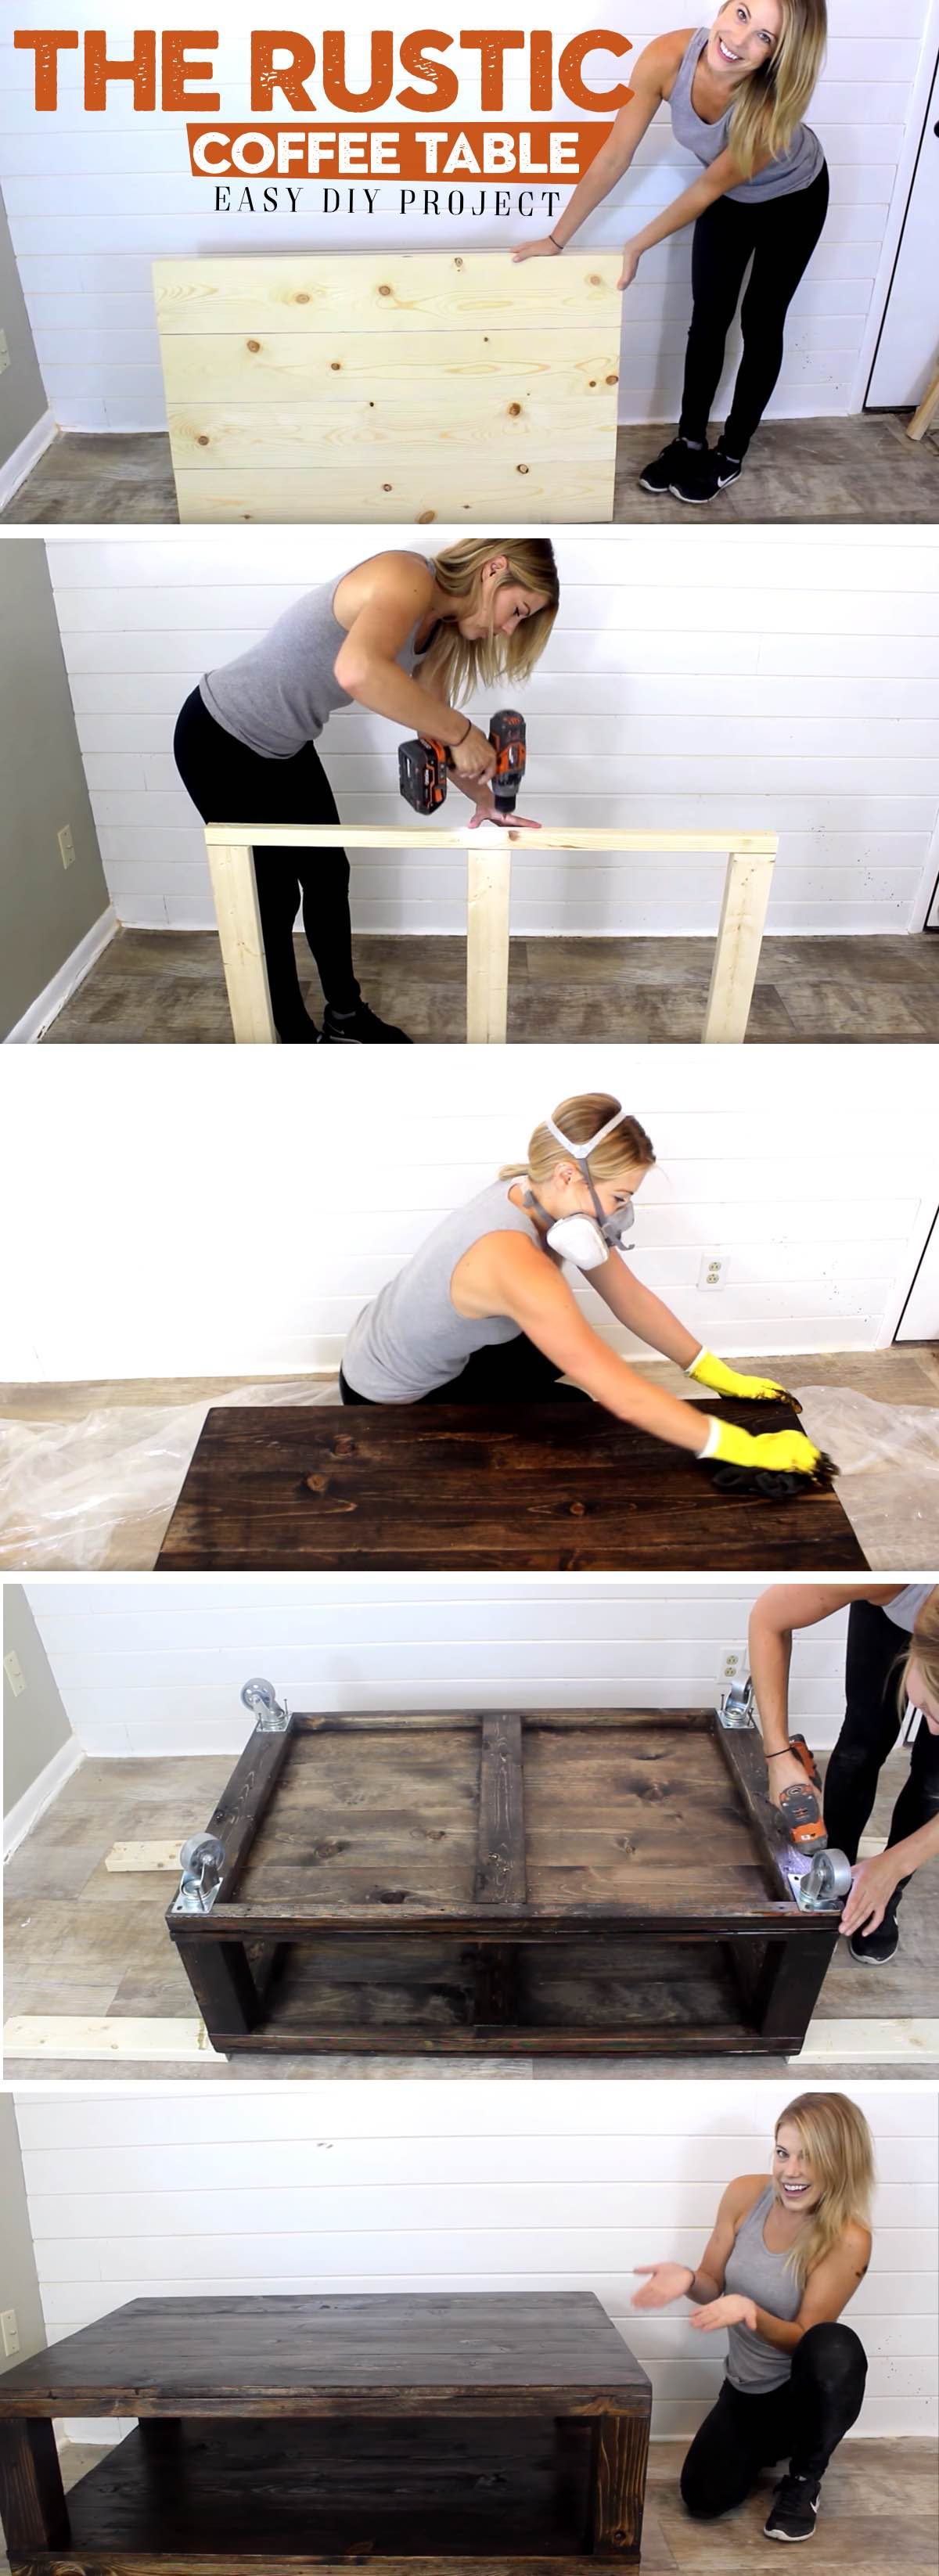 Easy DIY Tutorial for Building a Rustic Wheeled Coffee Table